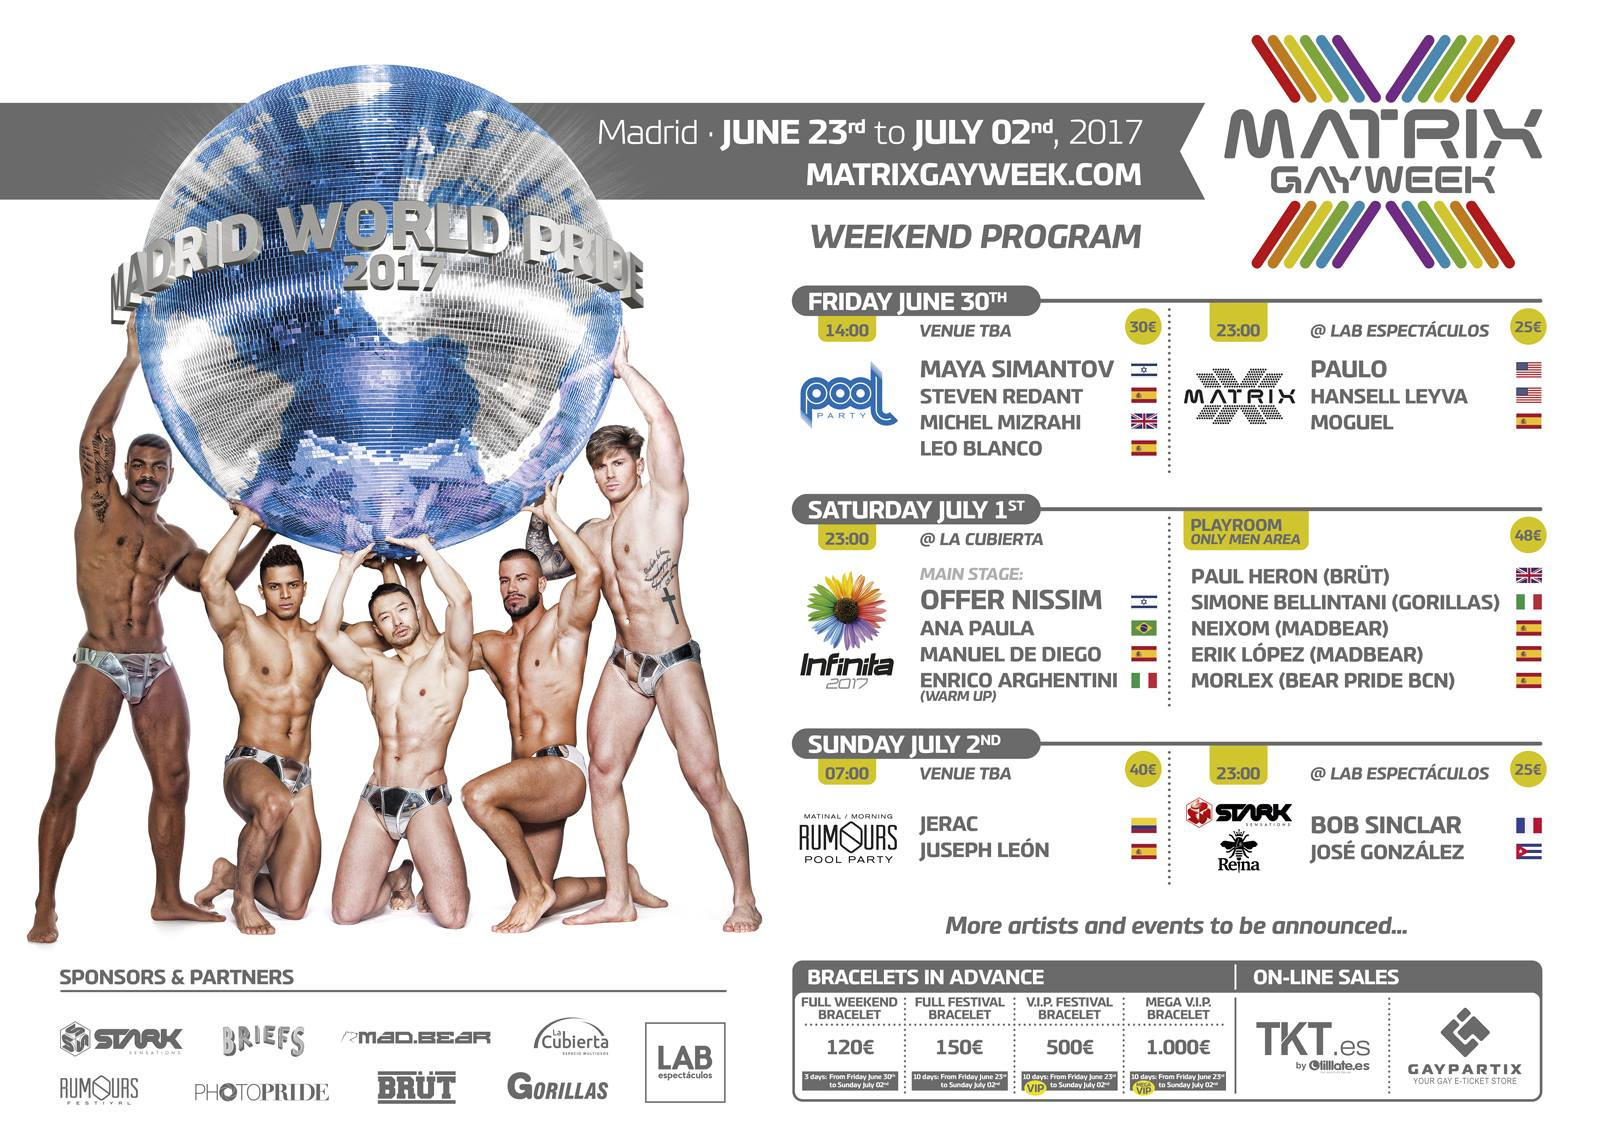 Matrix Gay Week: La madrid más gay estalla en colores en el World Pride